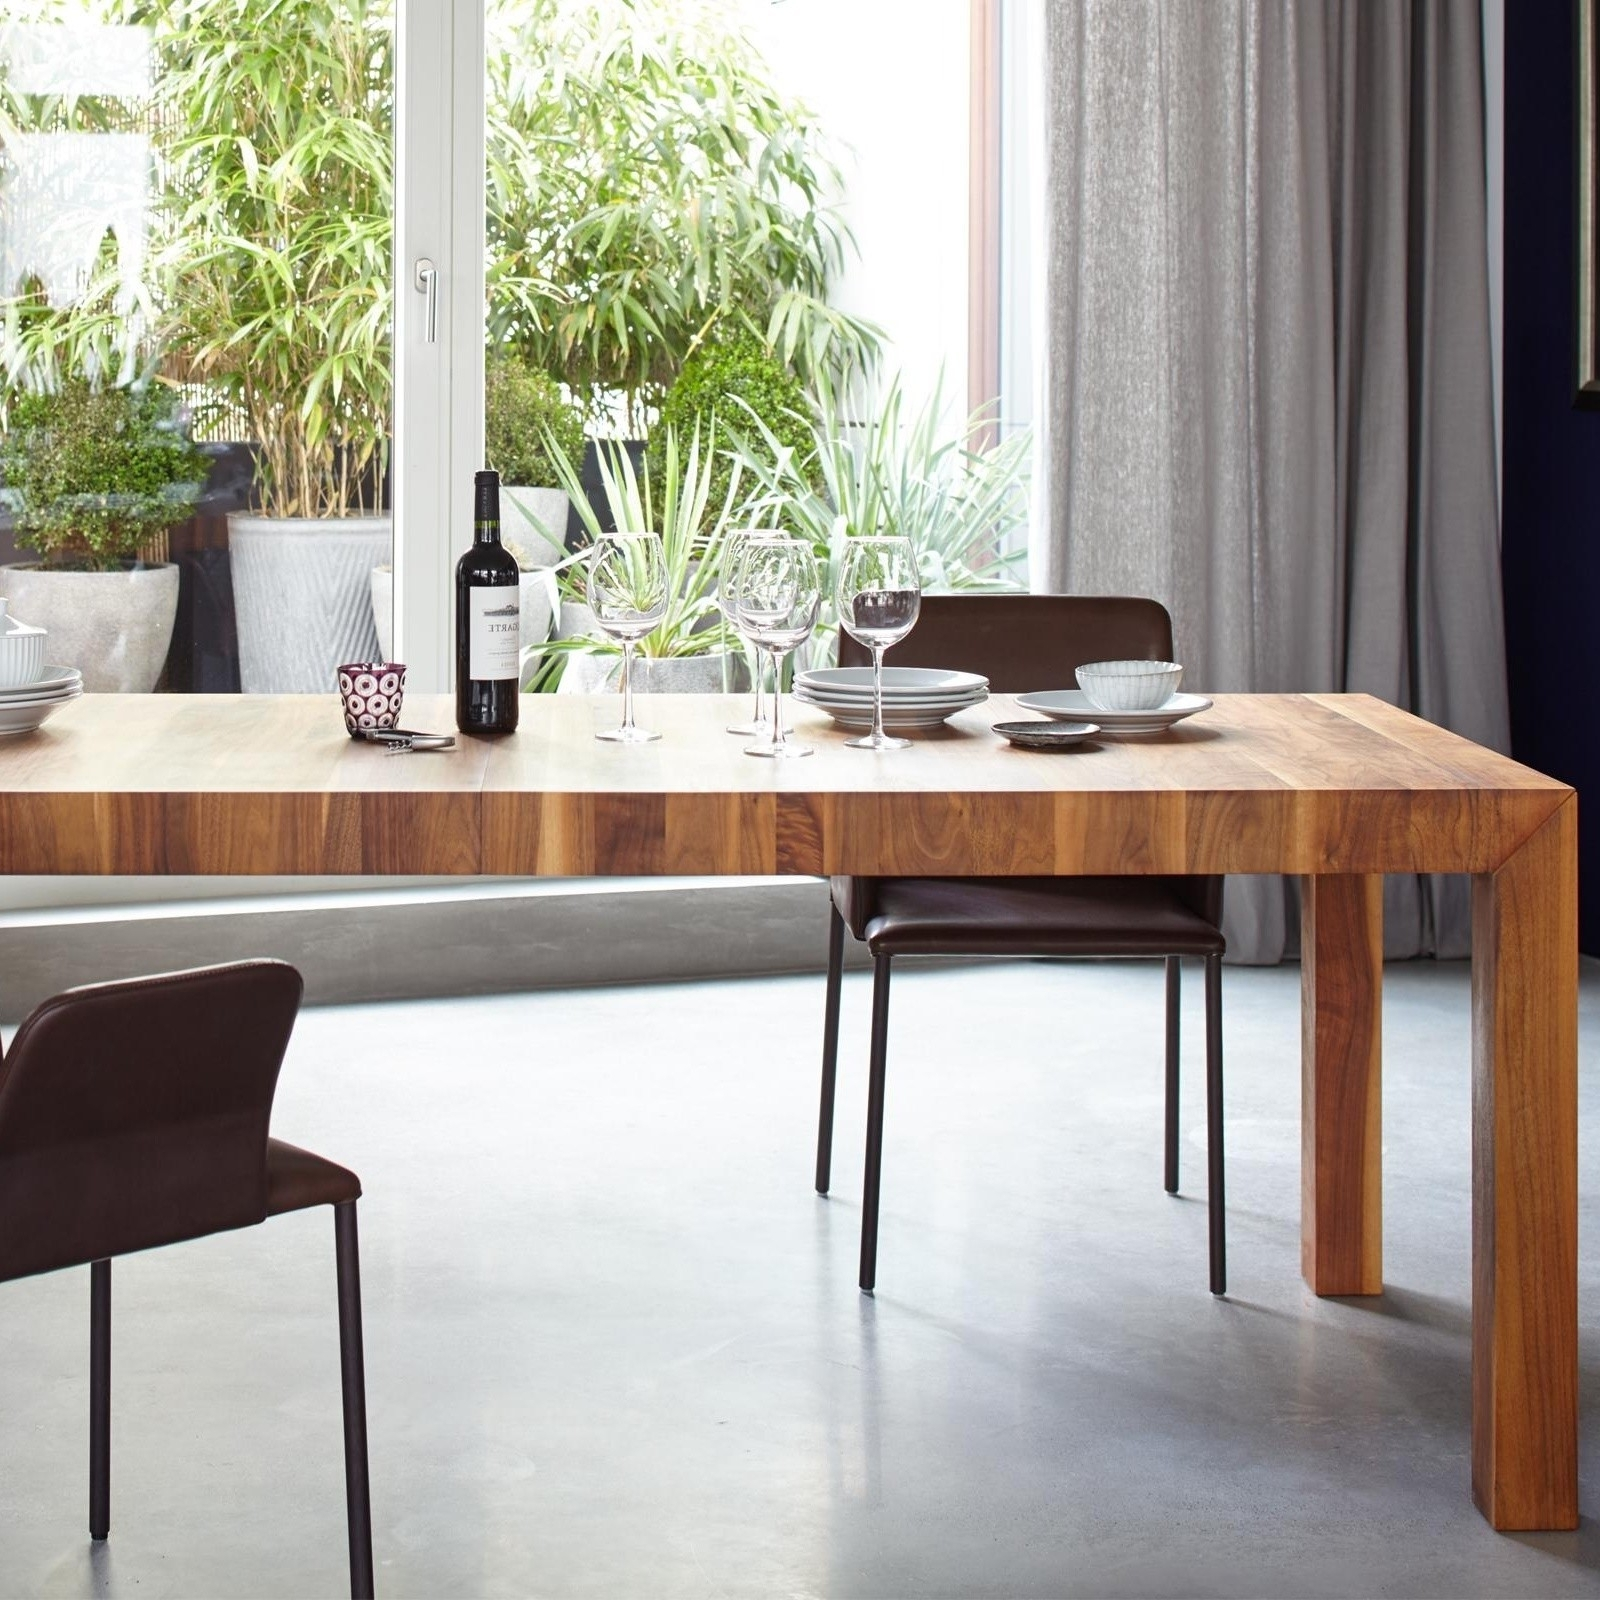 Volta Solid Wood Dining Table Extendable Pertaining To 2018 Solid Wood Dining Tables (View 23 of 25)